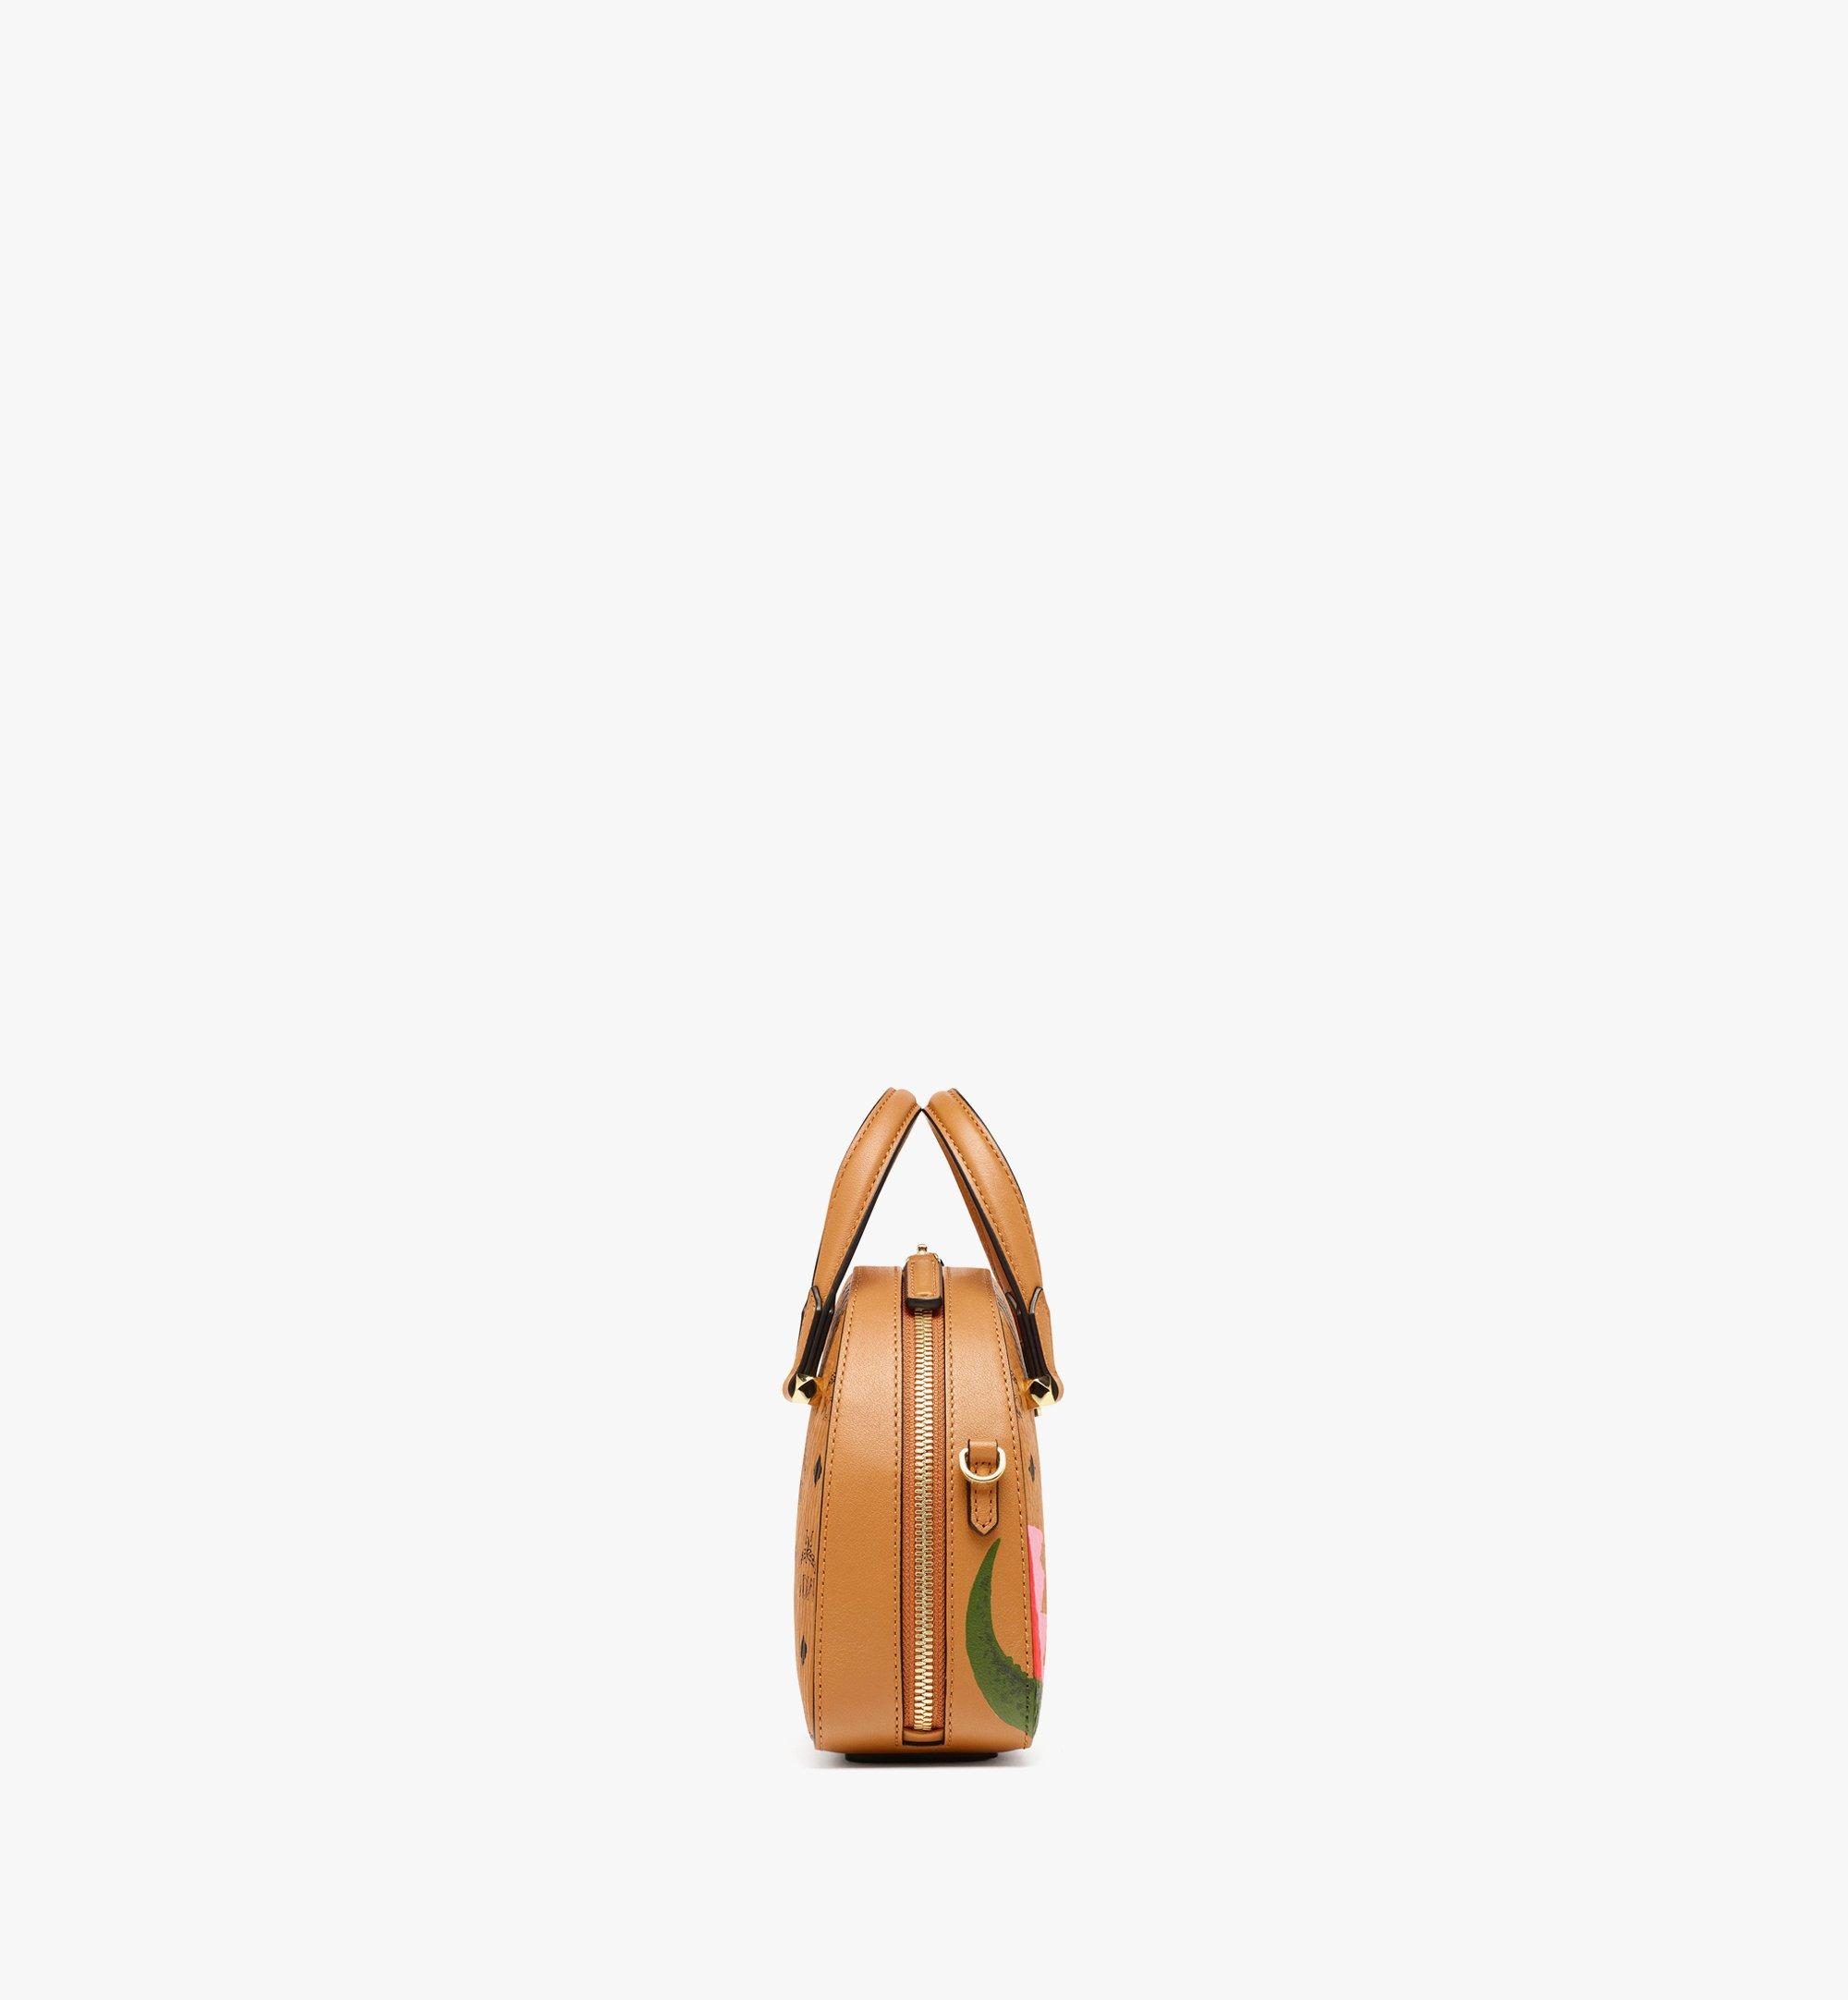 MCM Upcycling Project Half Moon Tote in Visetos Cognac MWTBSUP02CO001 Alternate View 1